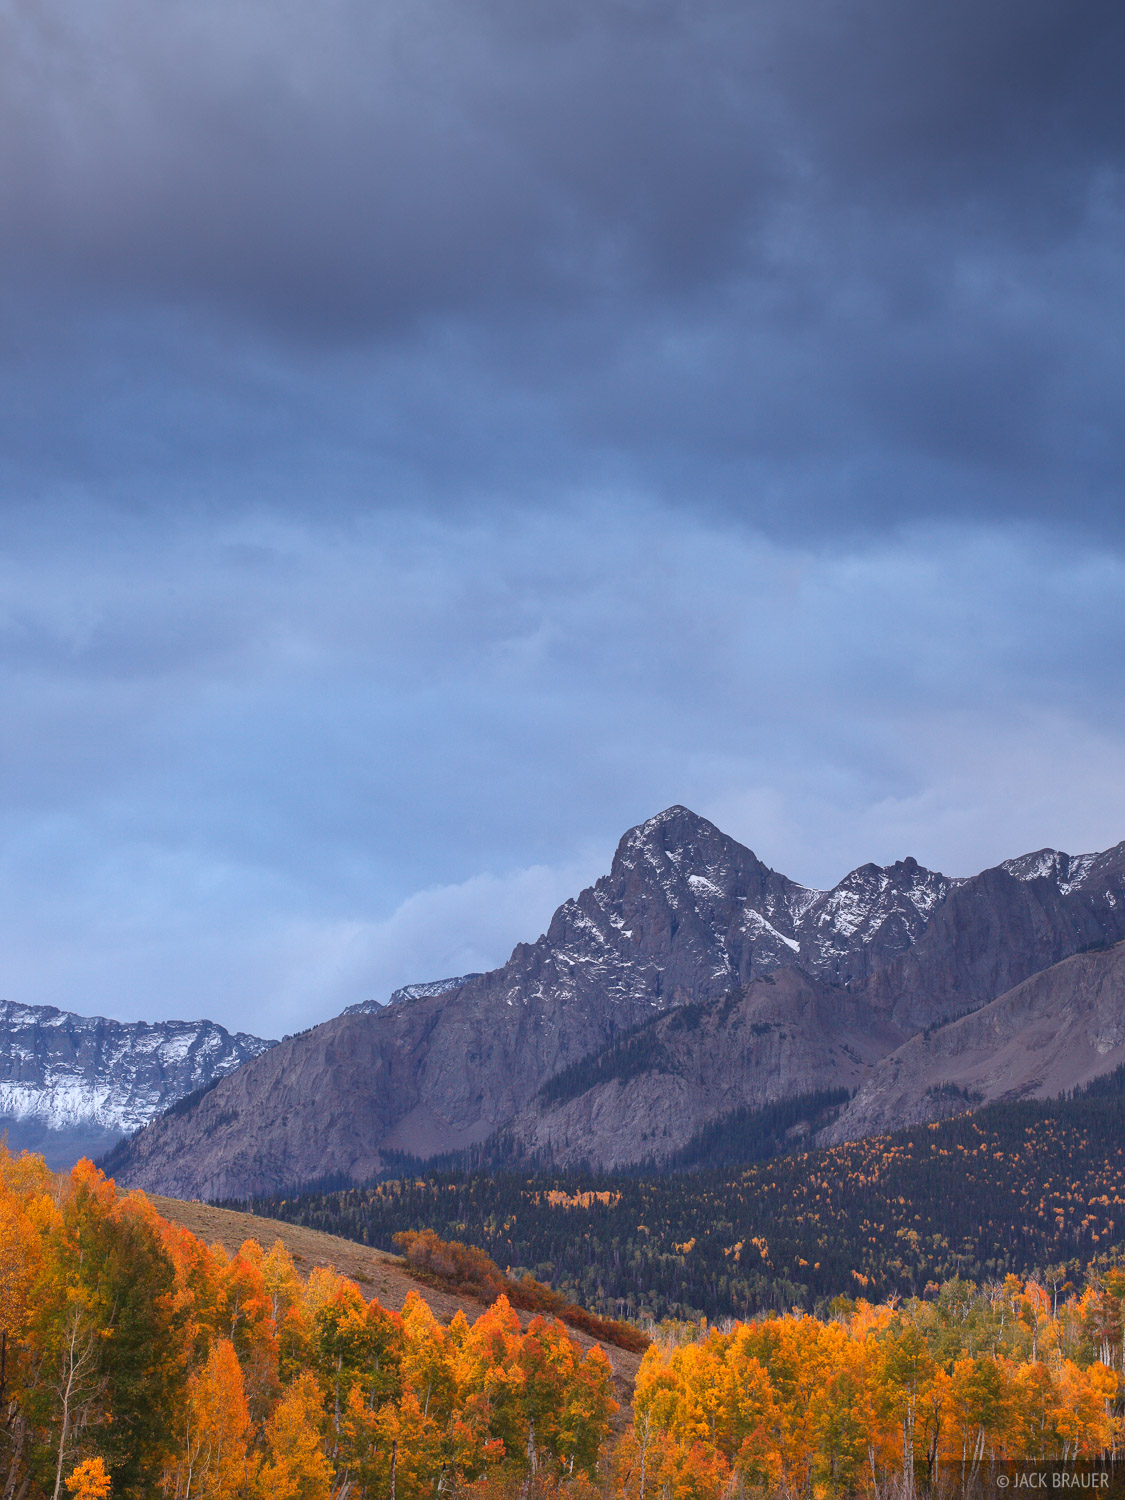 S9, Sneffels Range, San Juan Mountains, Colorado, autumn, photo